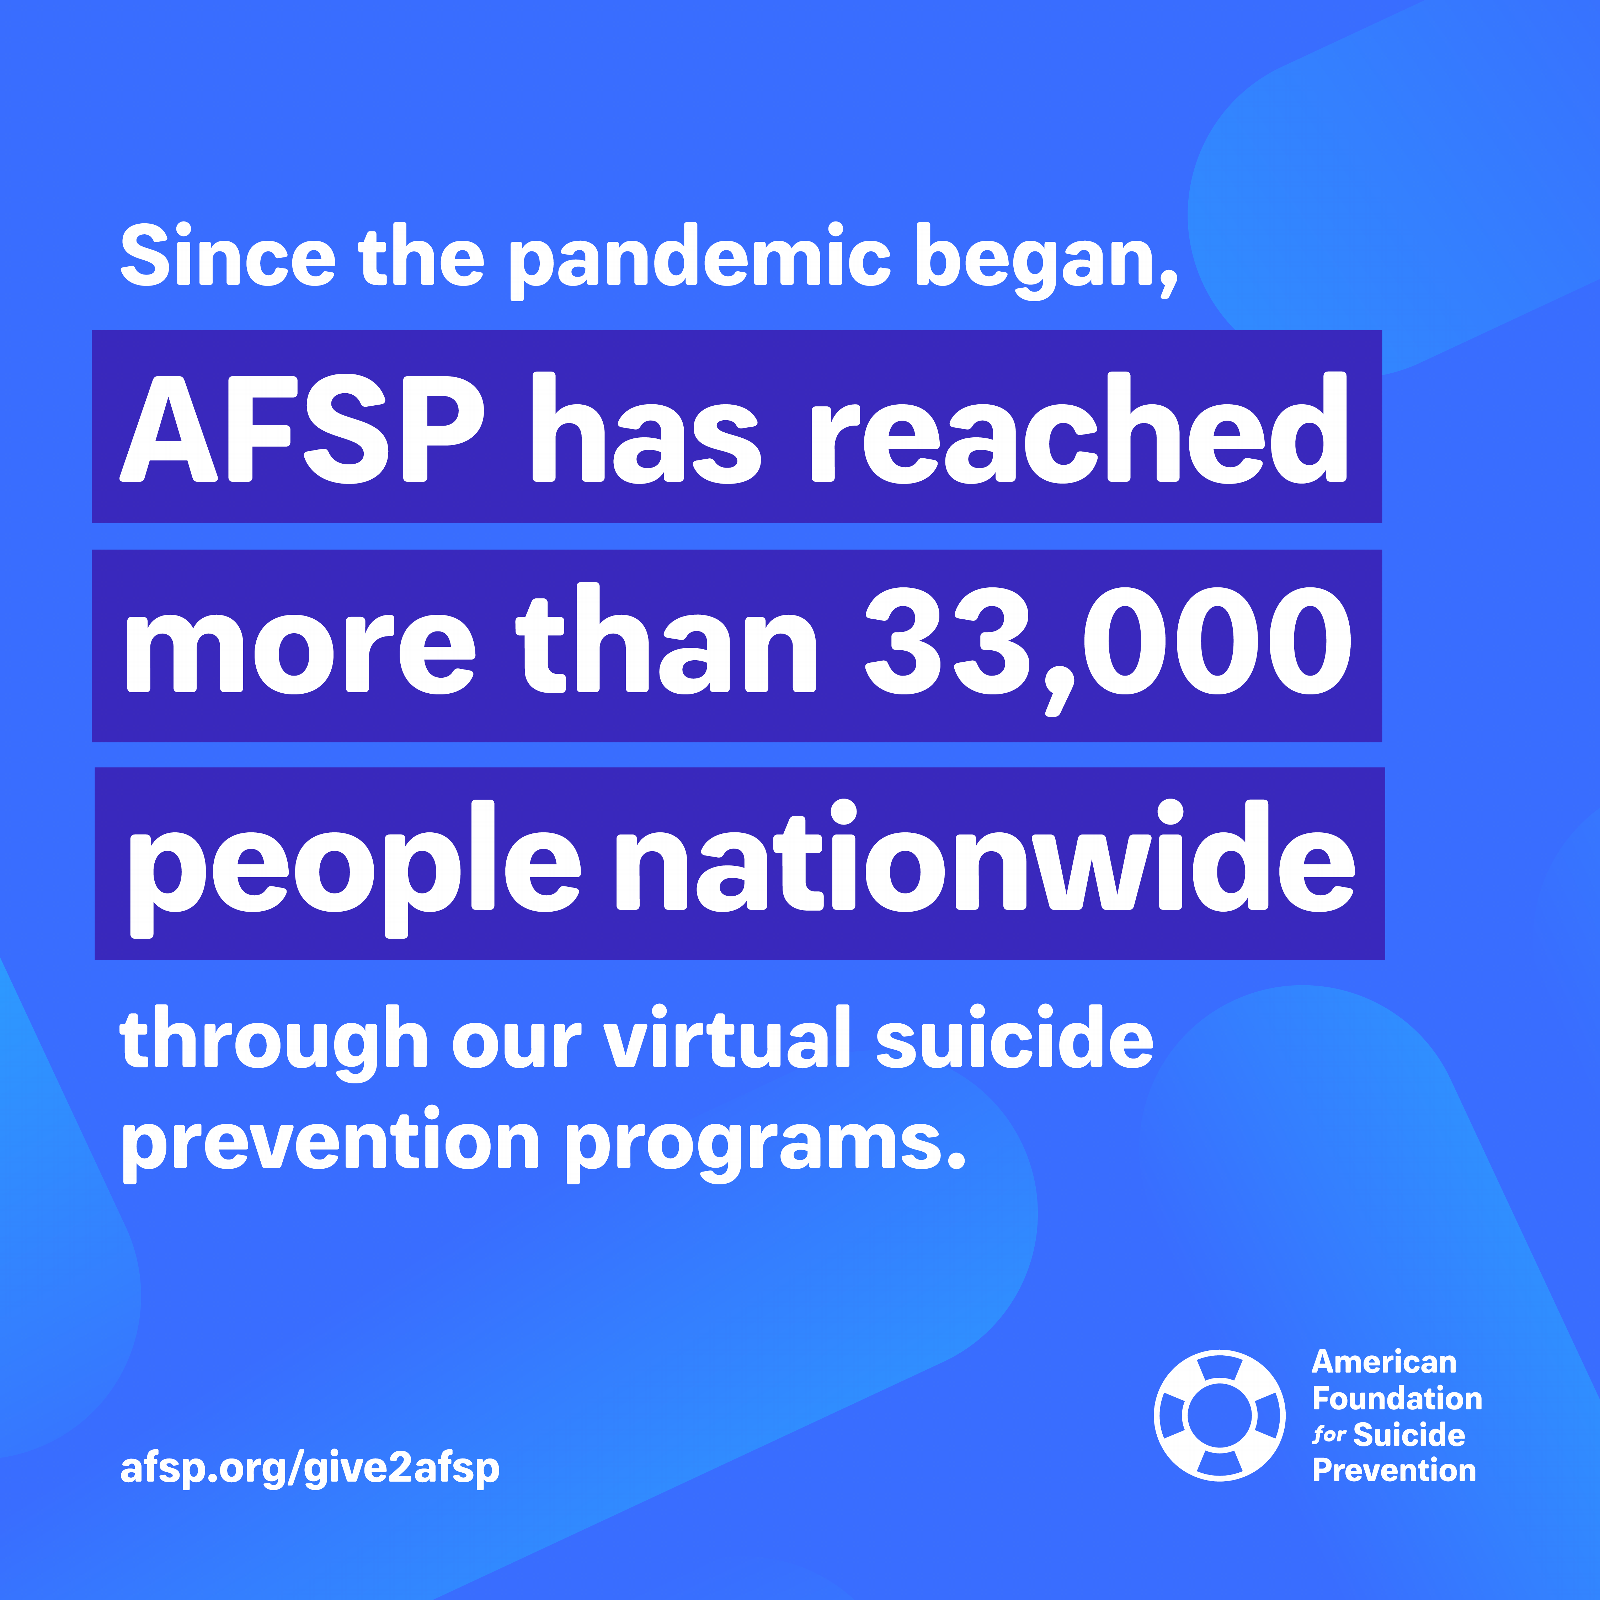 Since the pandemic began, AFSP has reached more than 33,000 people nationwide through our virtual suicide prevention programs.